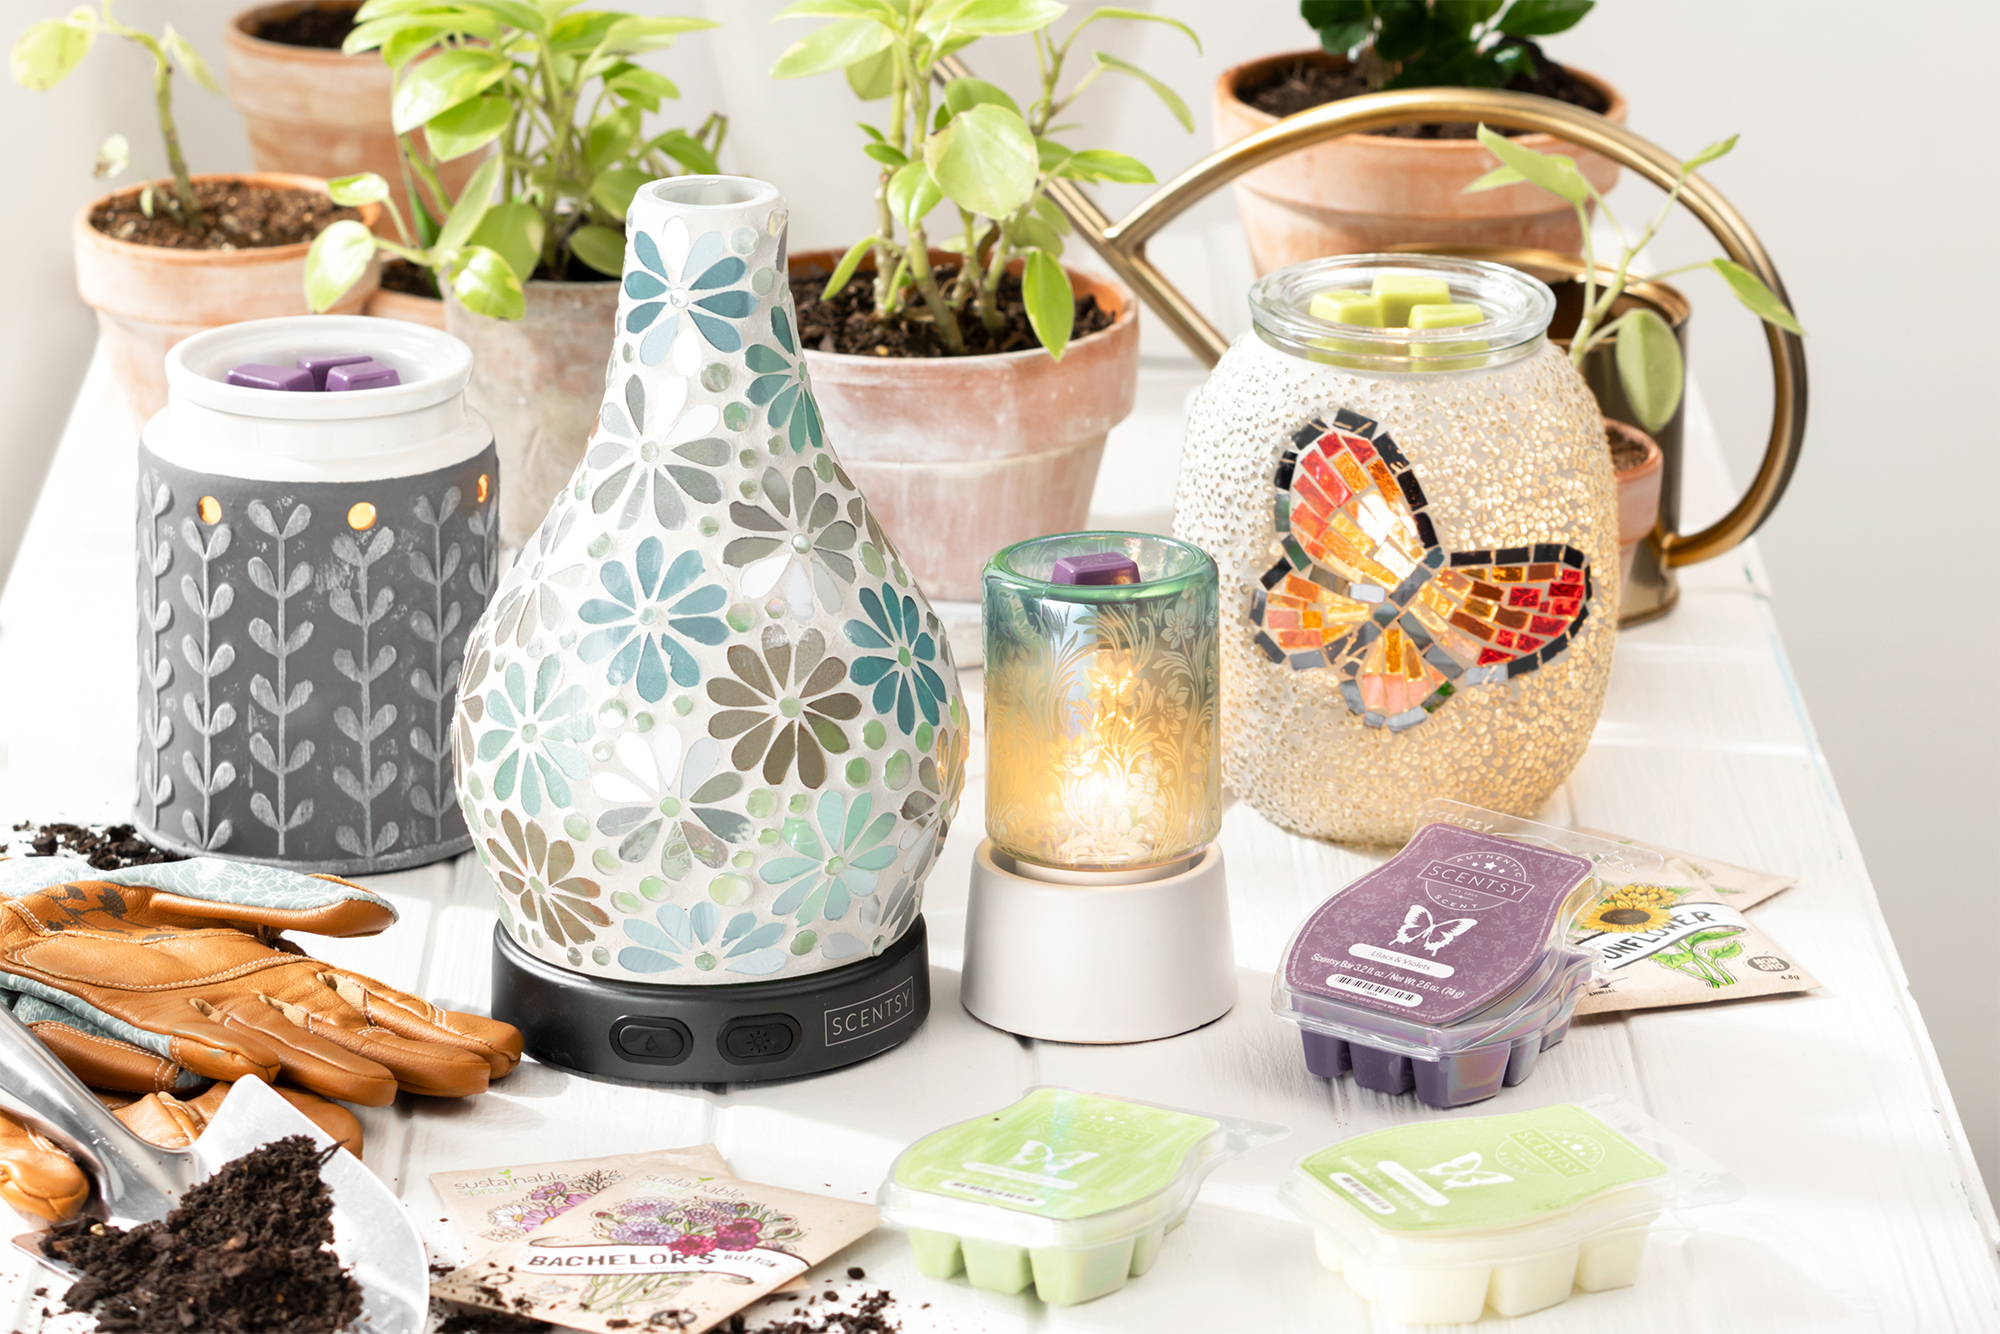 Spring inspired Scentsy products